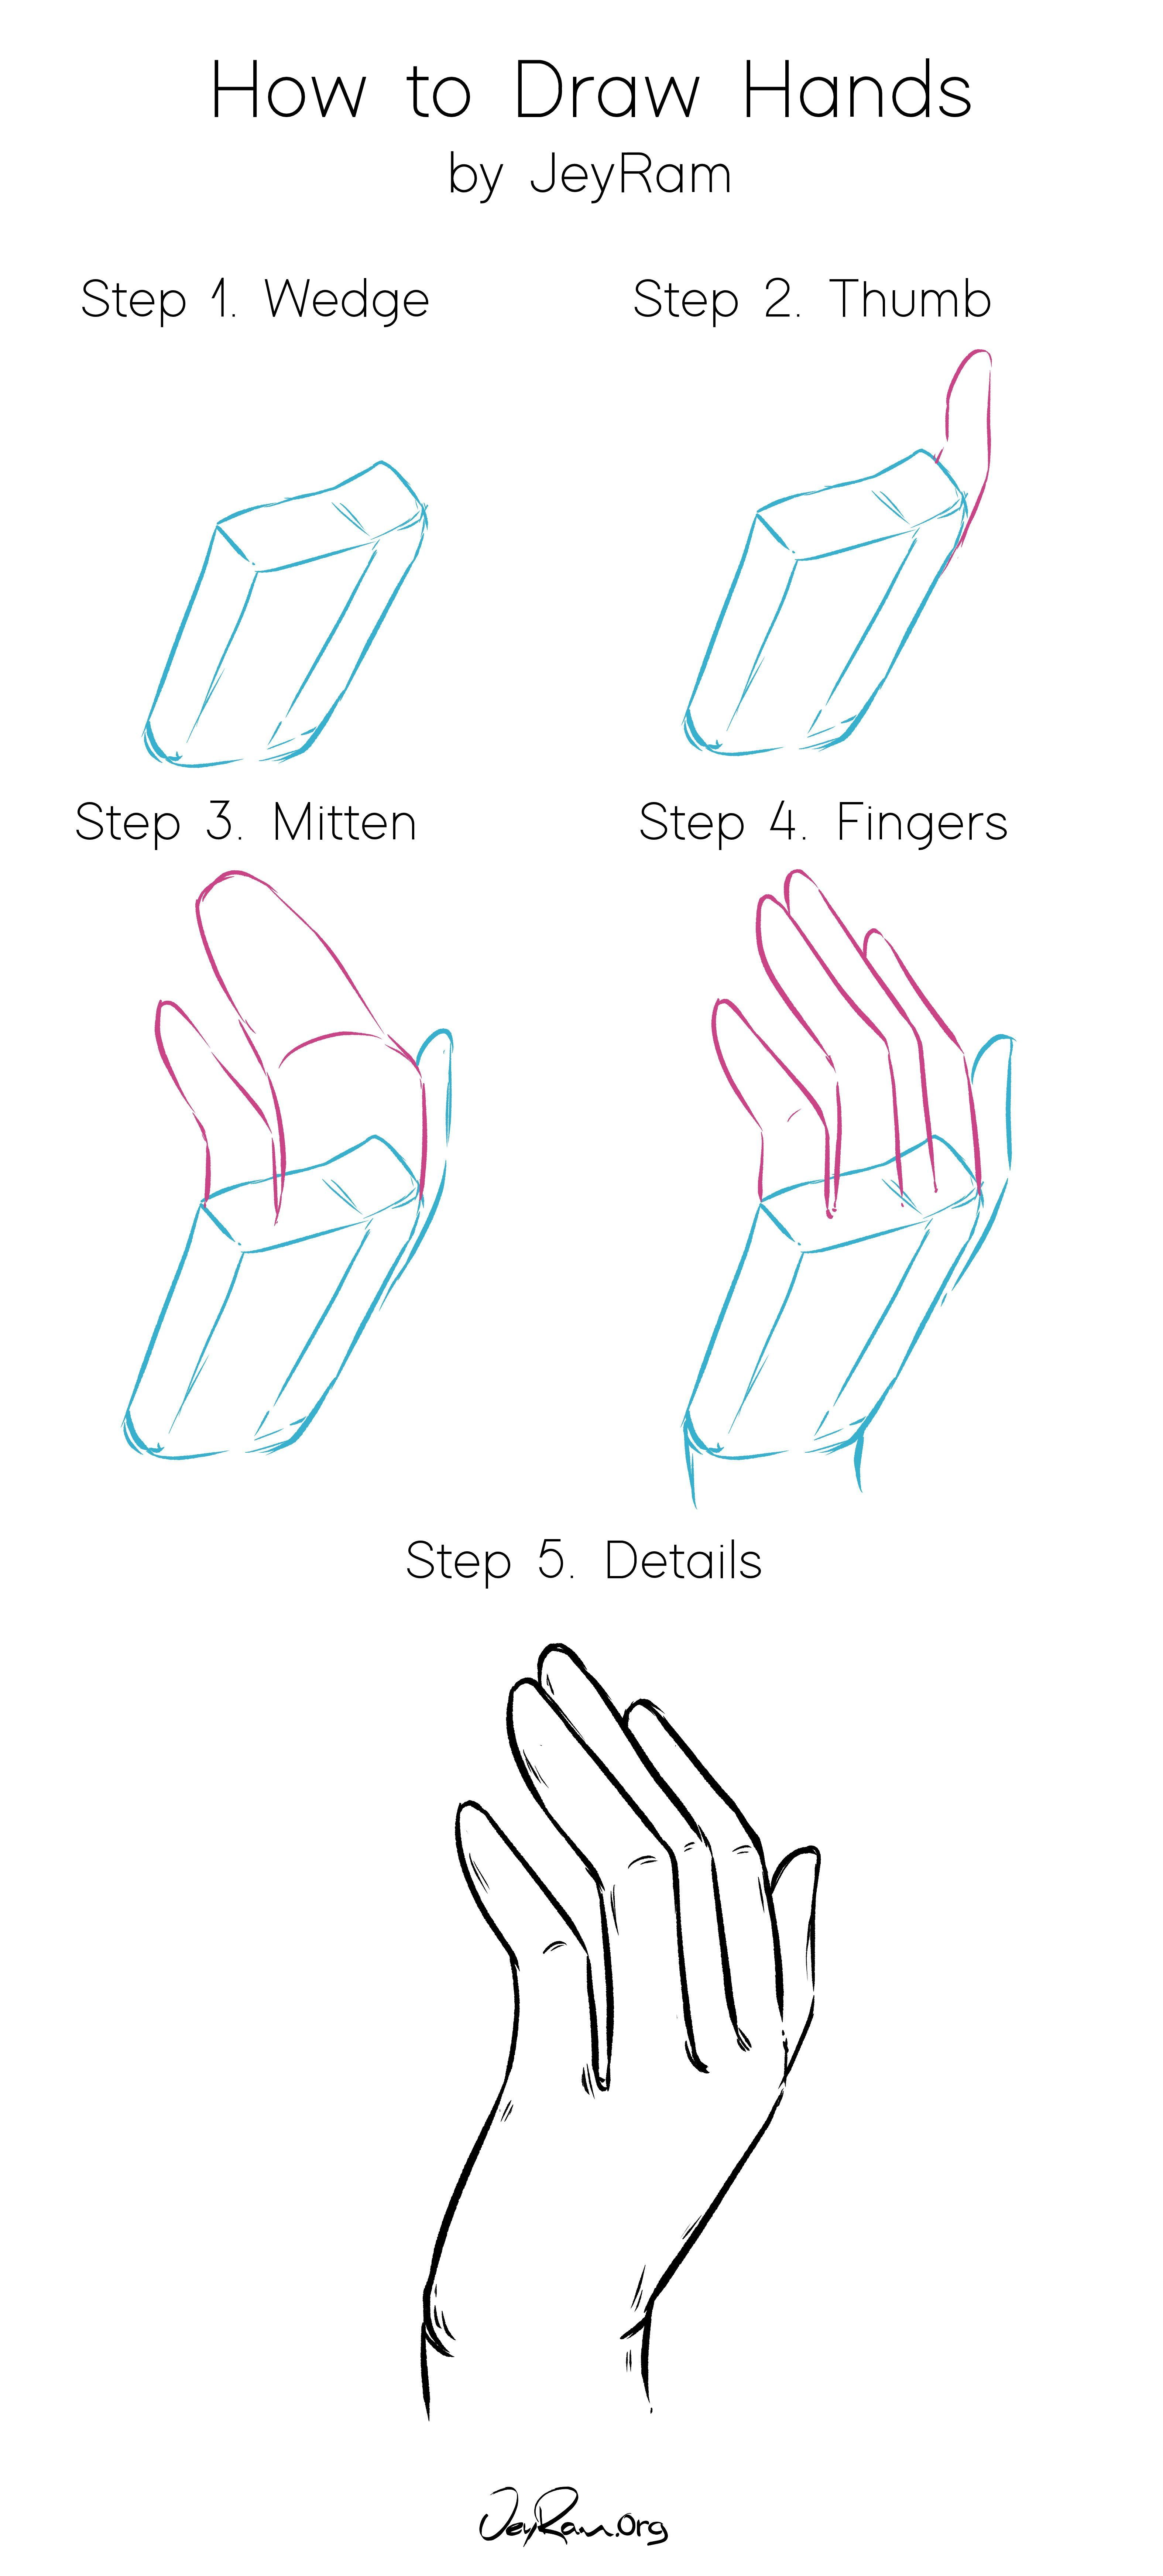 How to Draw Hands: Step by Step Tutorial for Beginners